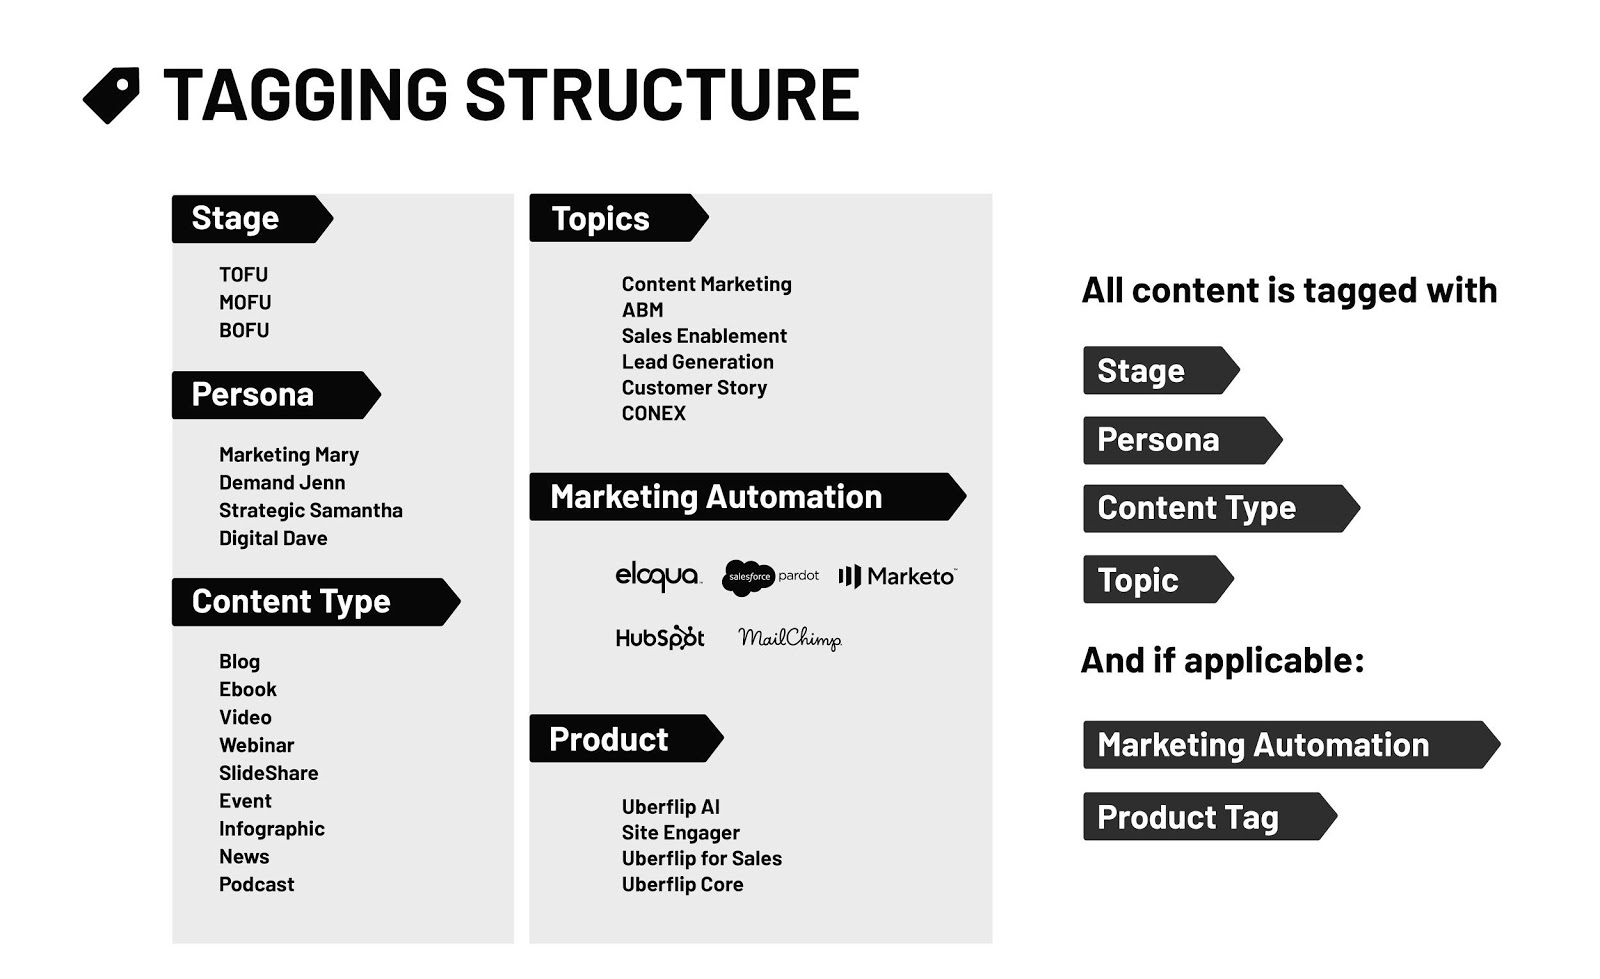 Uberflip's Tagging Structure